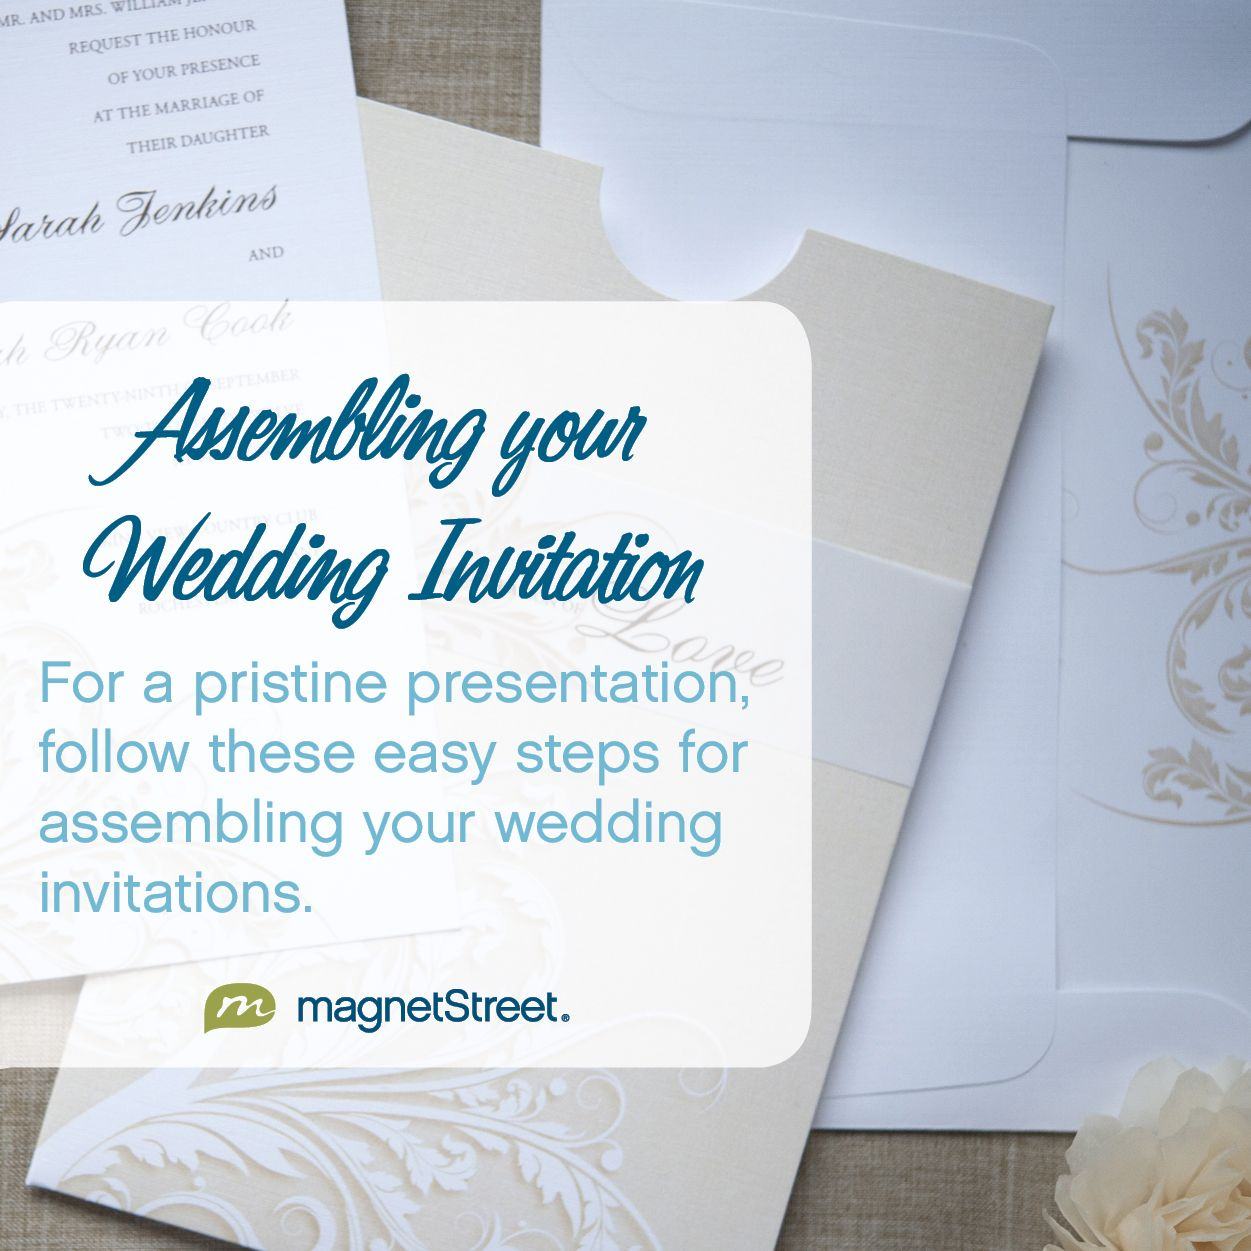 Wedding Invitation Assembly | Weddings, Wedding planning and Wedding